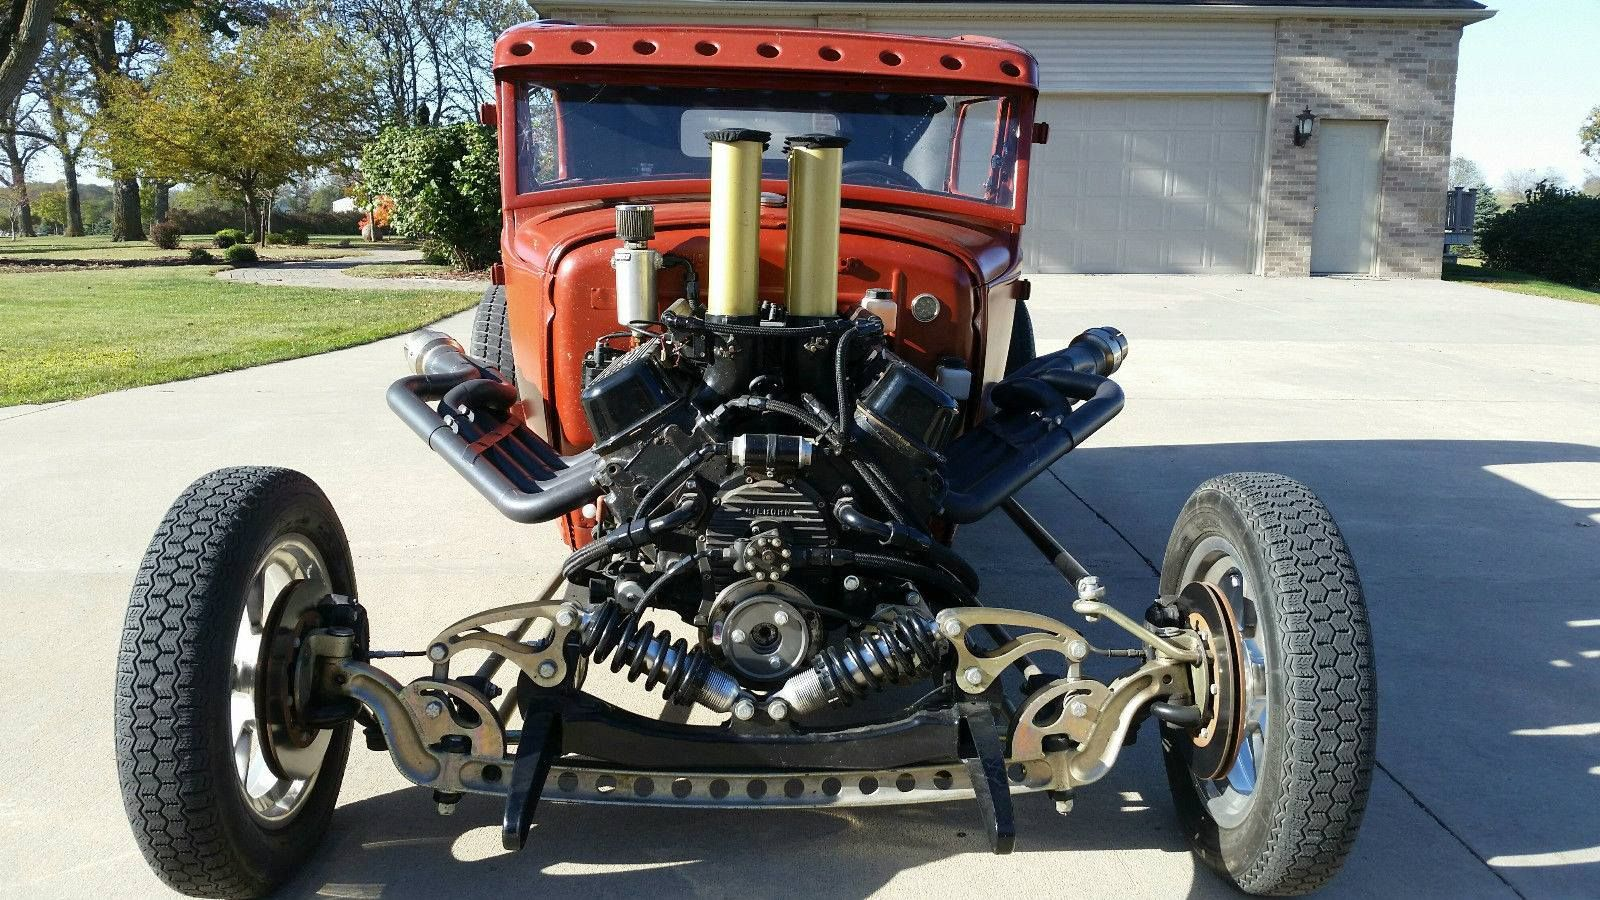 chevy small block powered vintage hotrod pickup with inboard